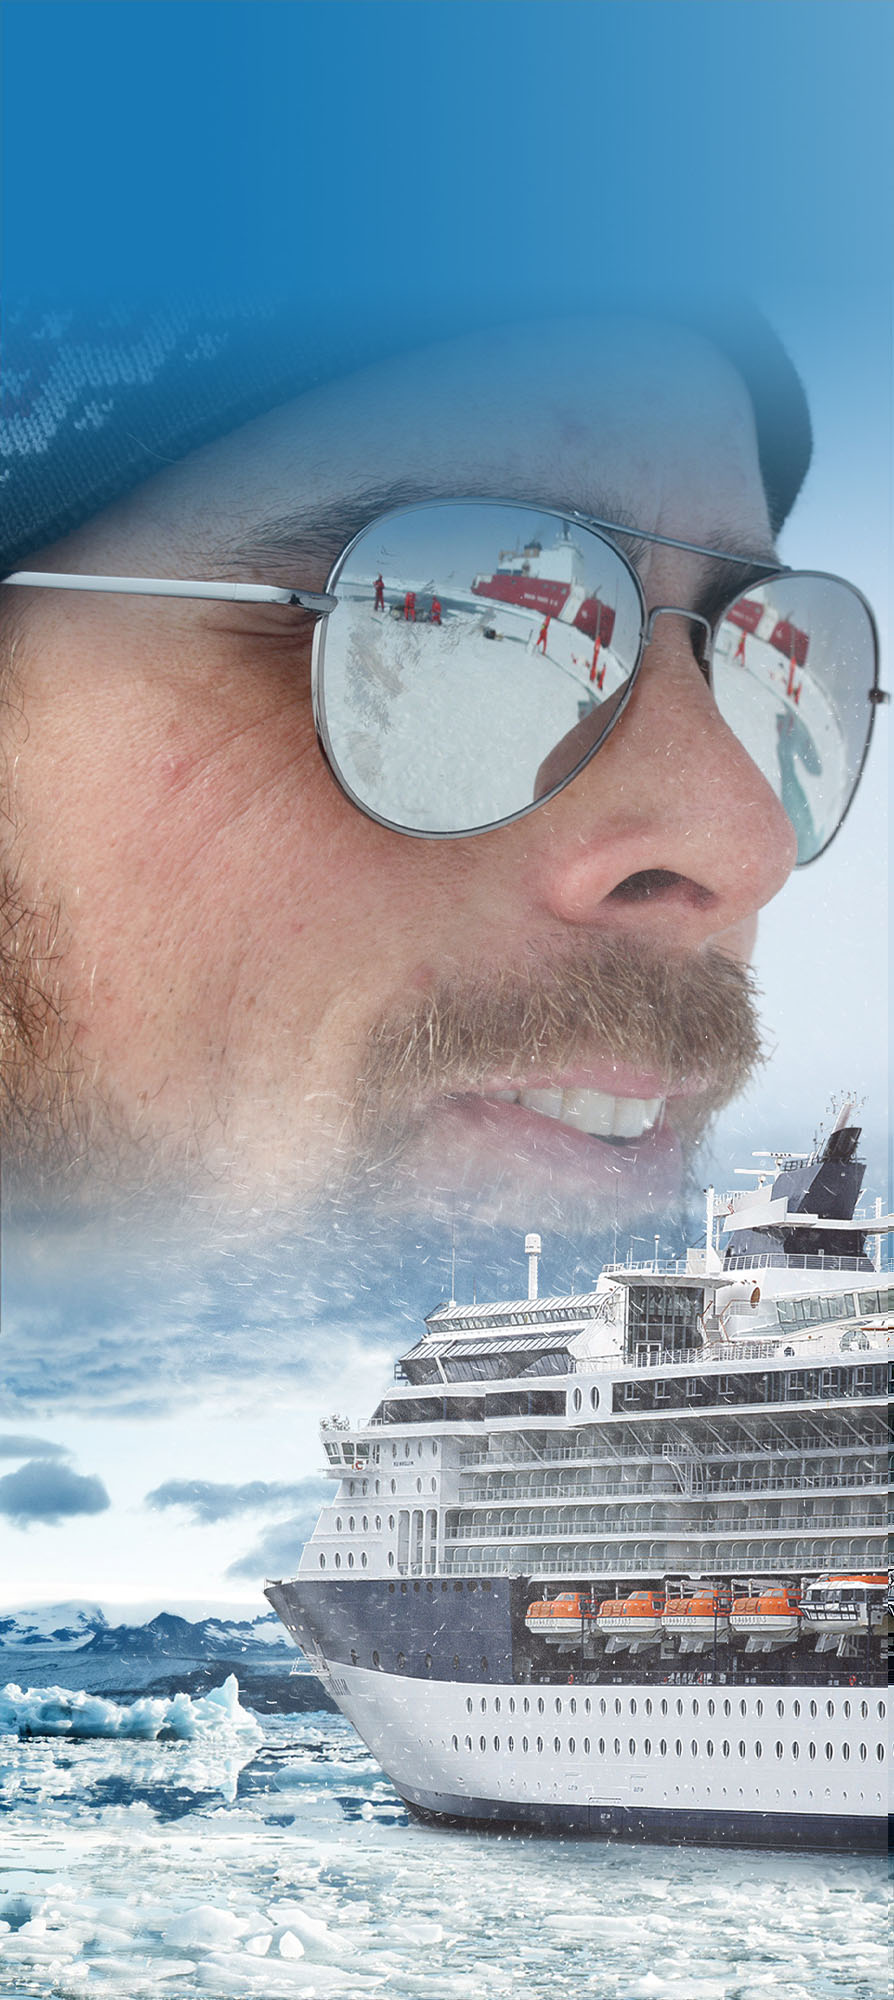 ADAC Side Banner - Man with sunglasses juxtaposed against cruise ship in ice field